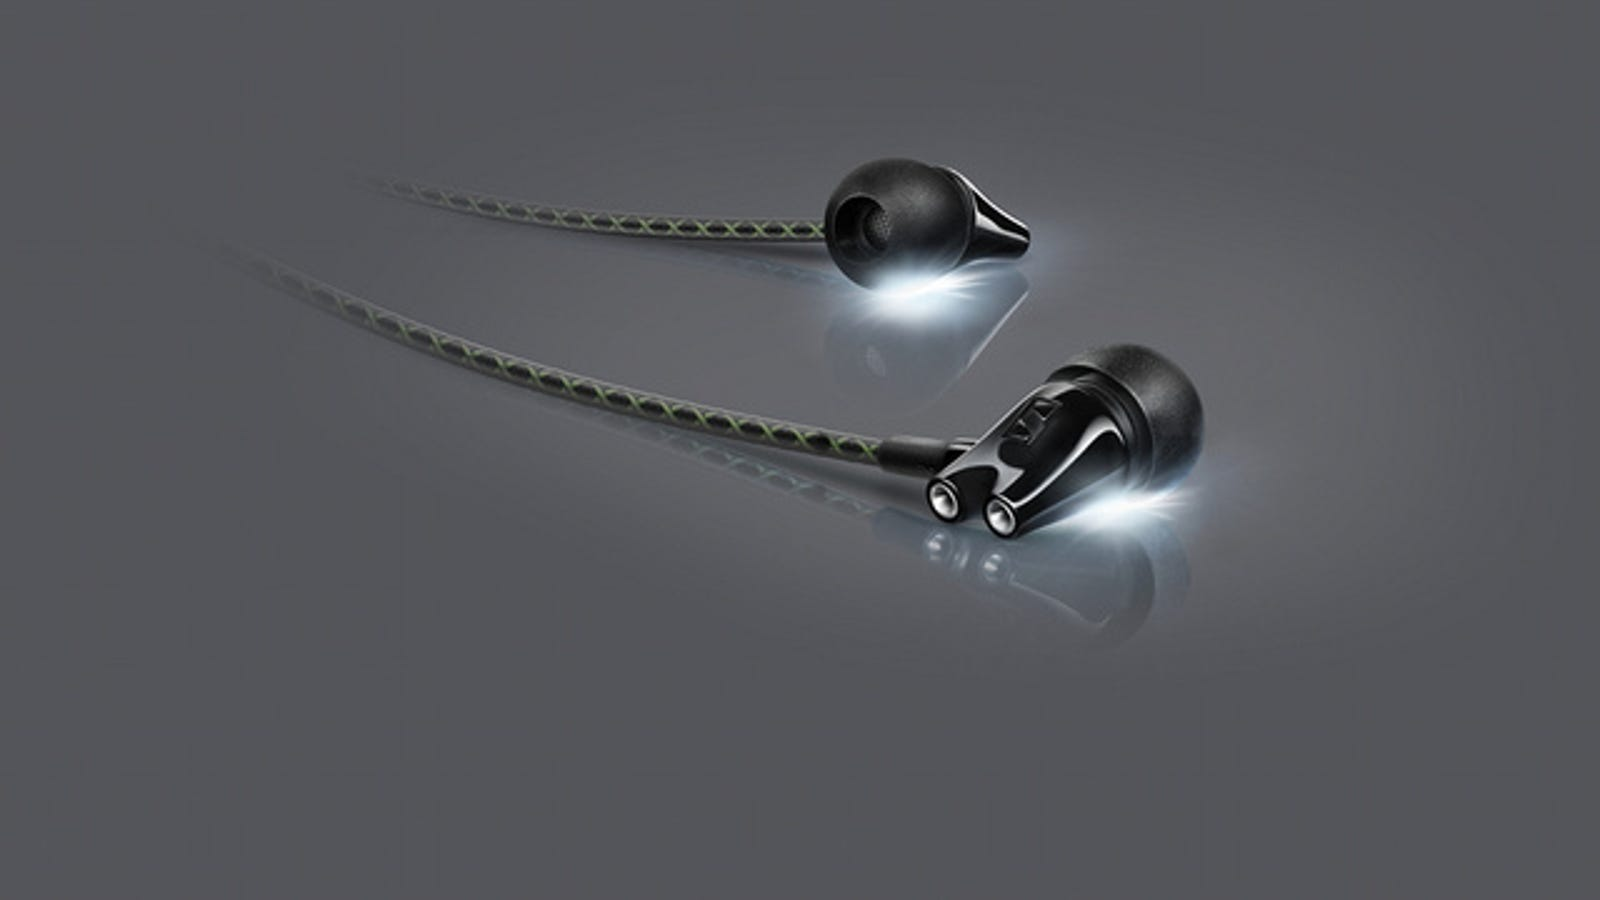 headphone jack extender 3ft - The Most Intense Ear Buds Sennheiser Has Ever Made